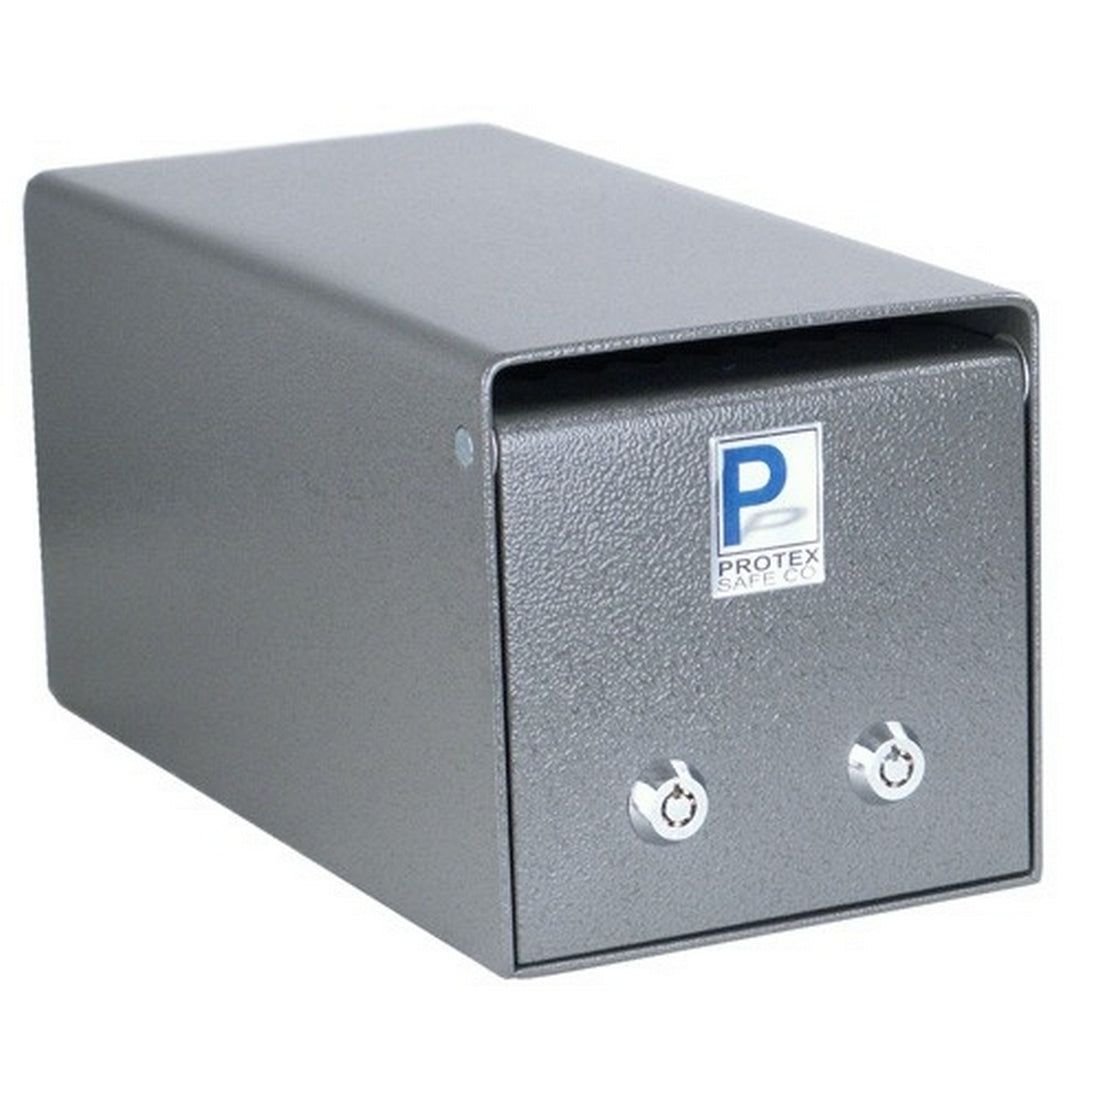 Protex Safe SDB-104 Under The Counter Drop Box With Tubular Lock